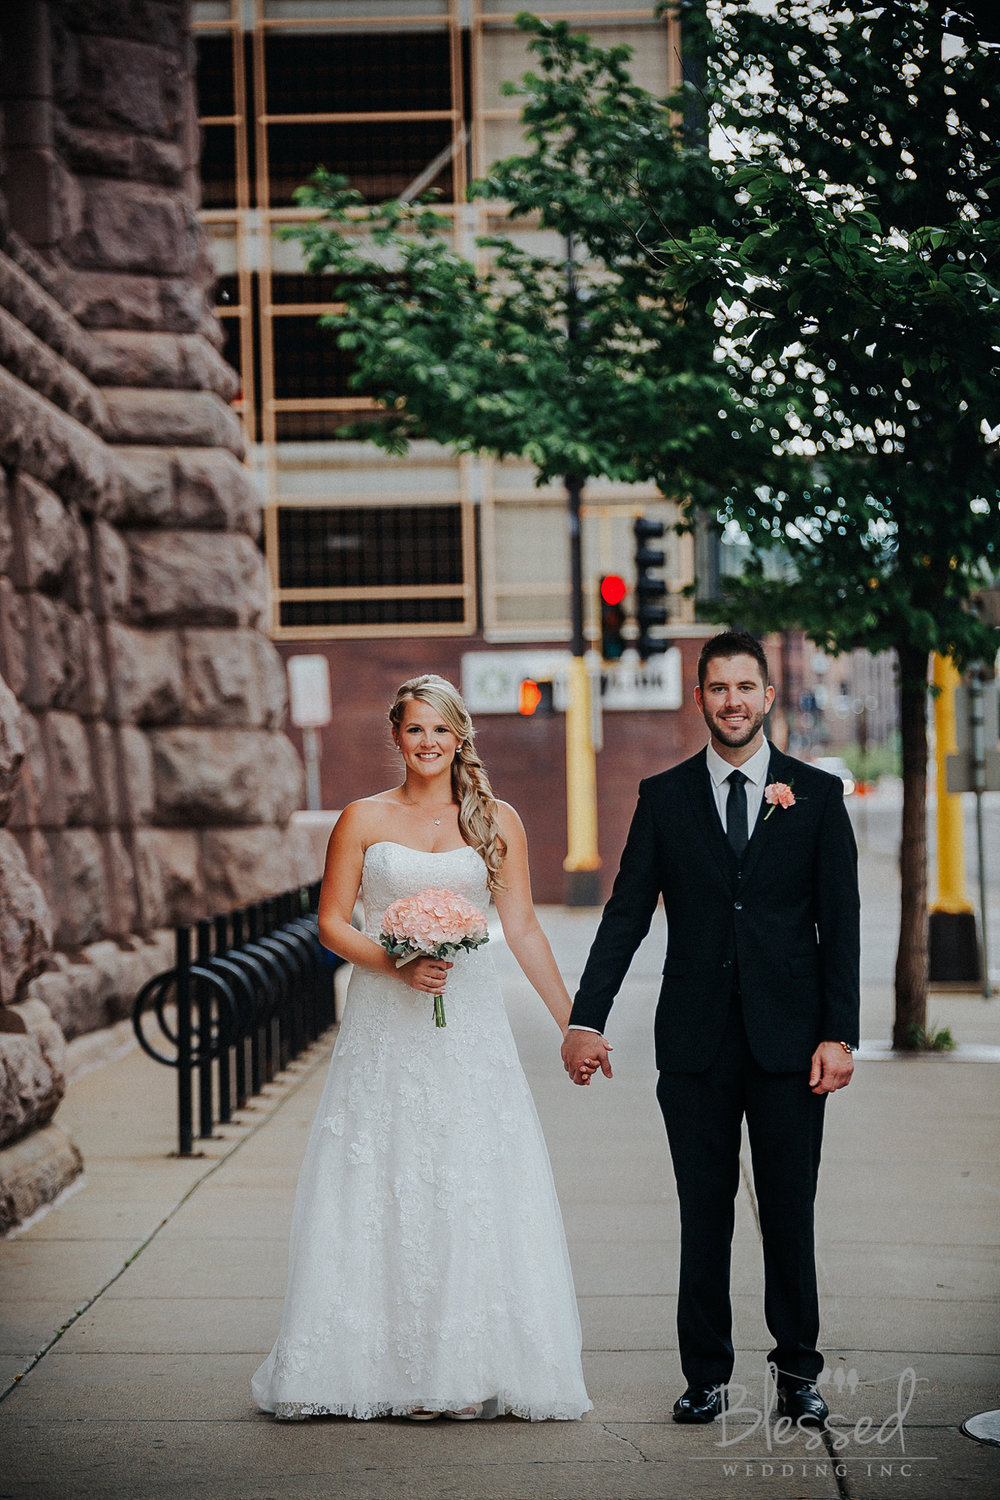 Destination Wedding Photography Minnesota By Blessed Wedding Photographers-58.jpg